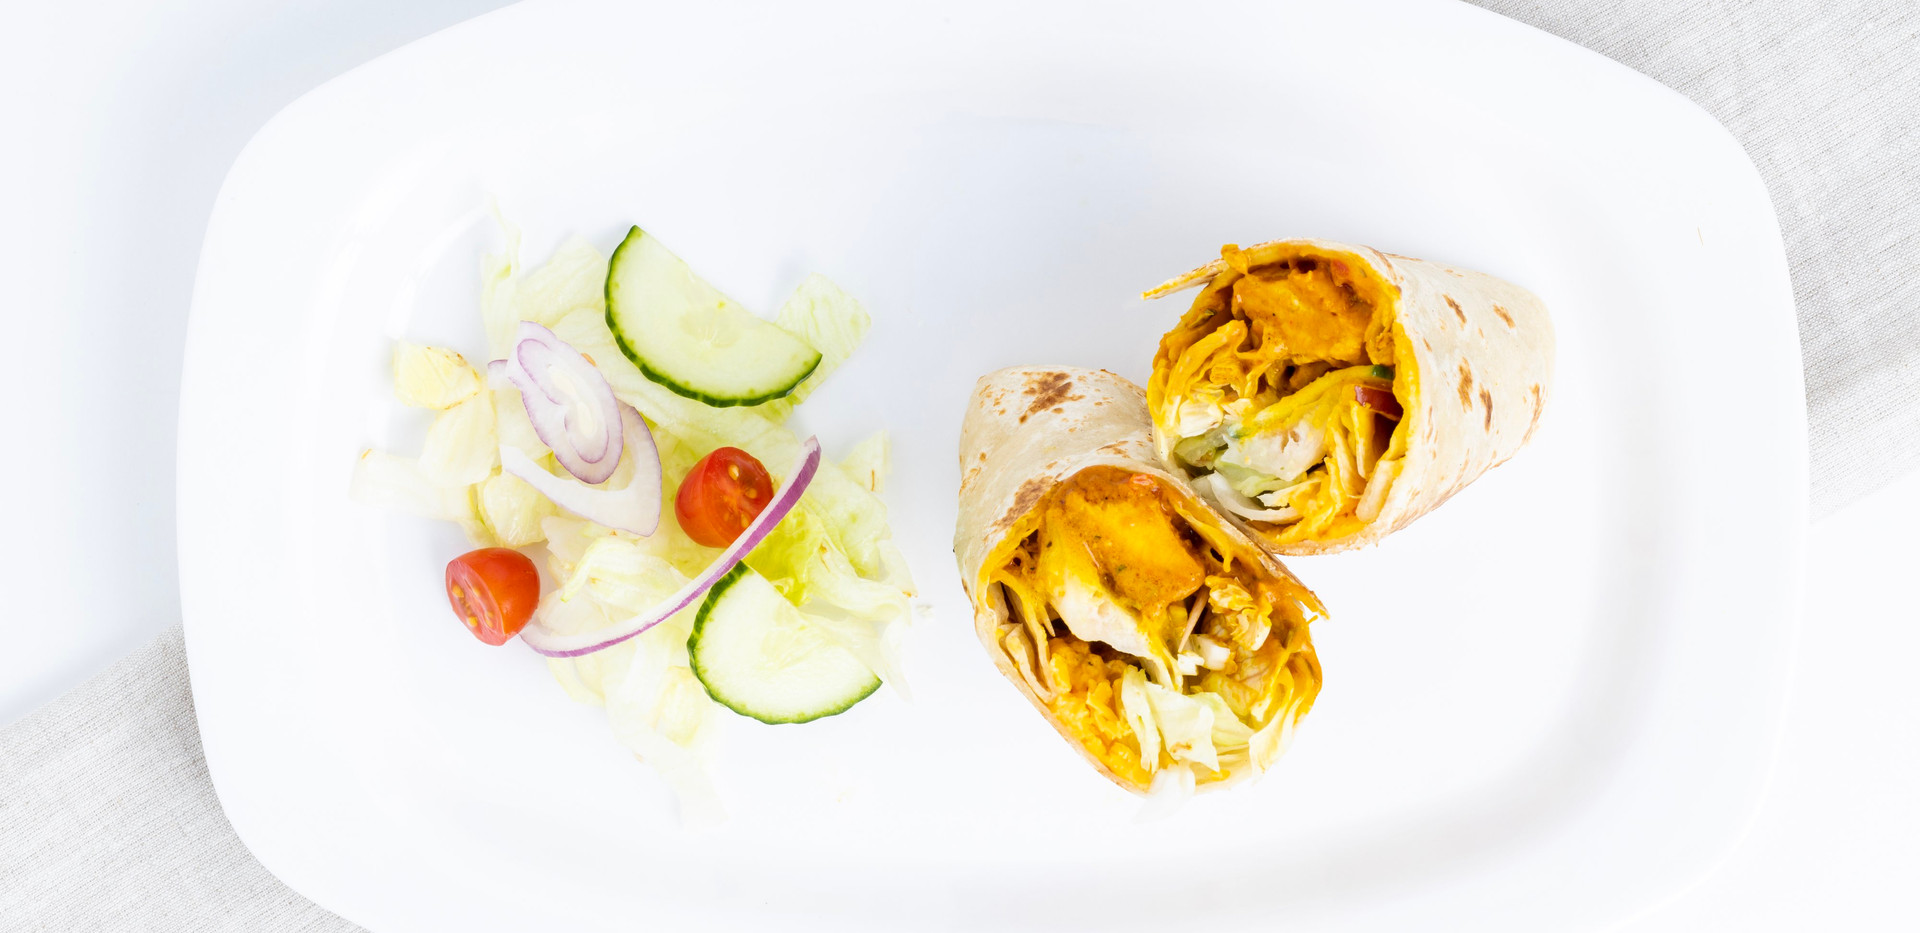 ButterChicken Wrap _ Bombay Wraps.jpg